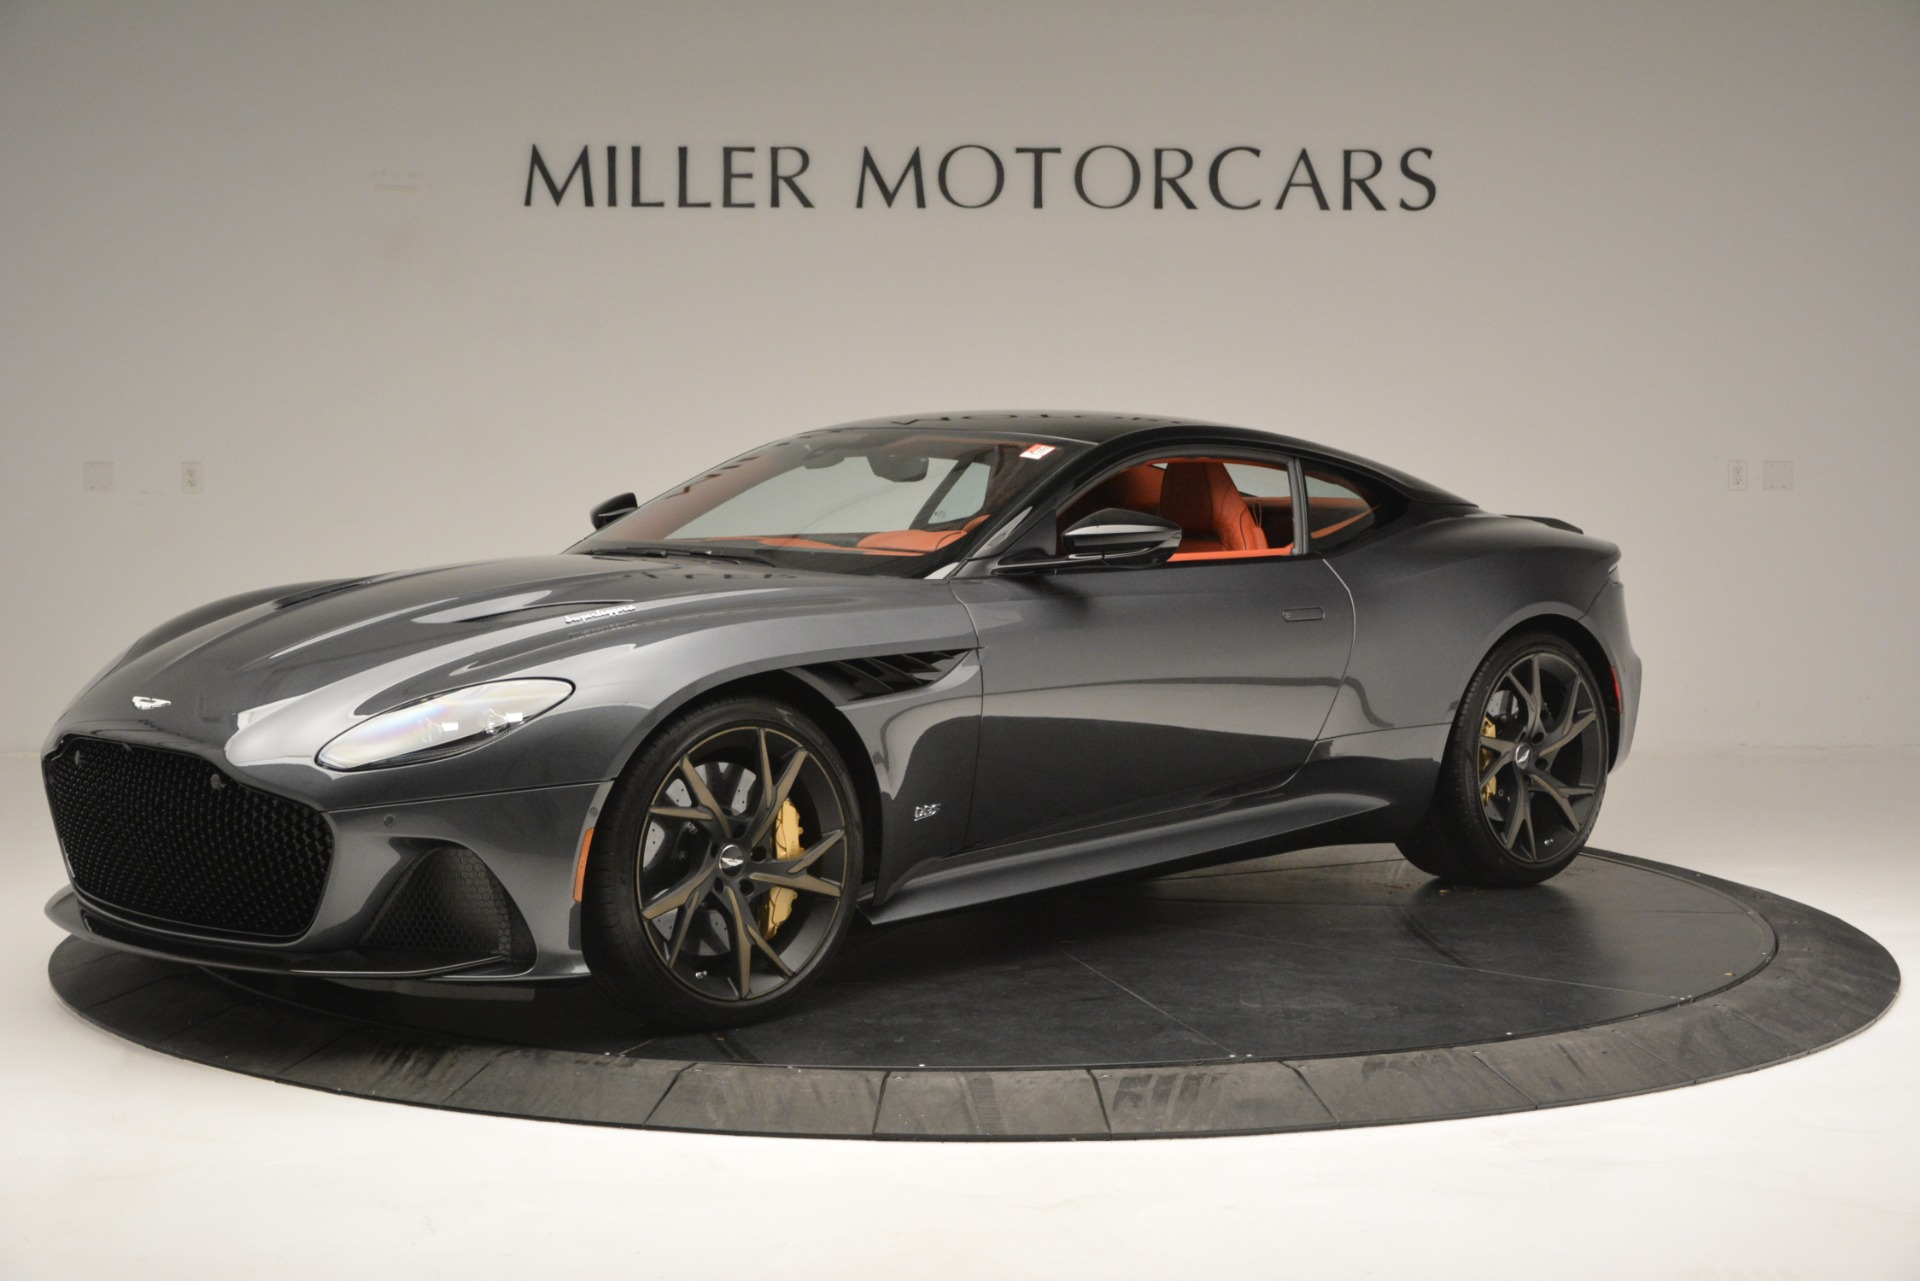 New 2019 Aston Martin DBS Superleggera For Sale In Greenwich, CT 2827_main